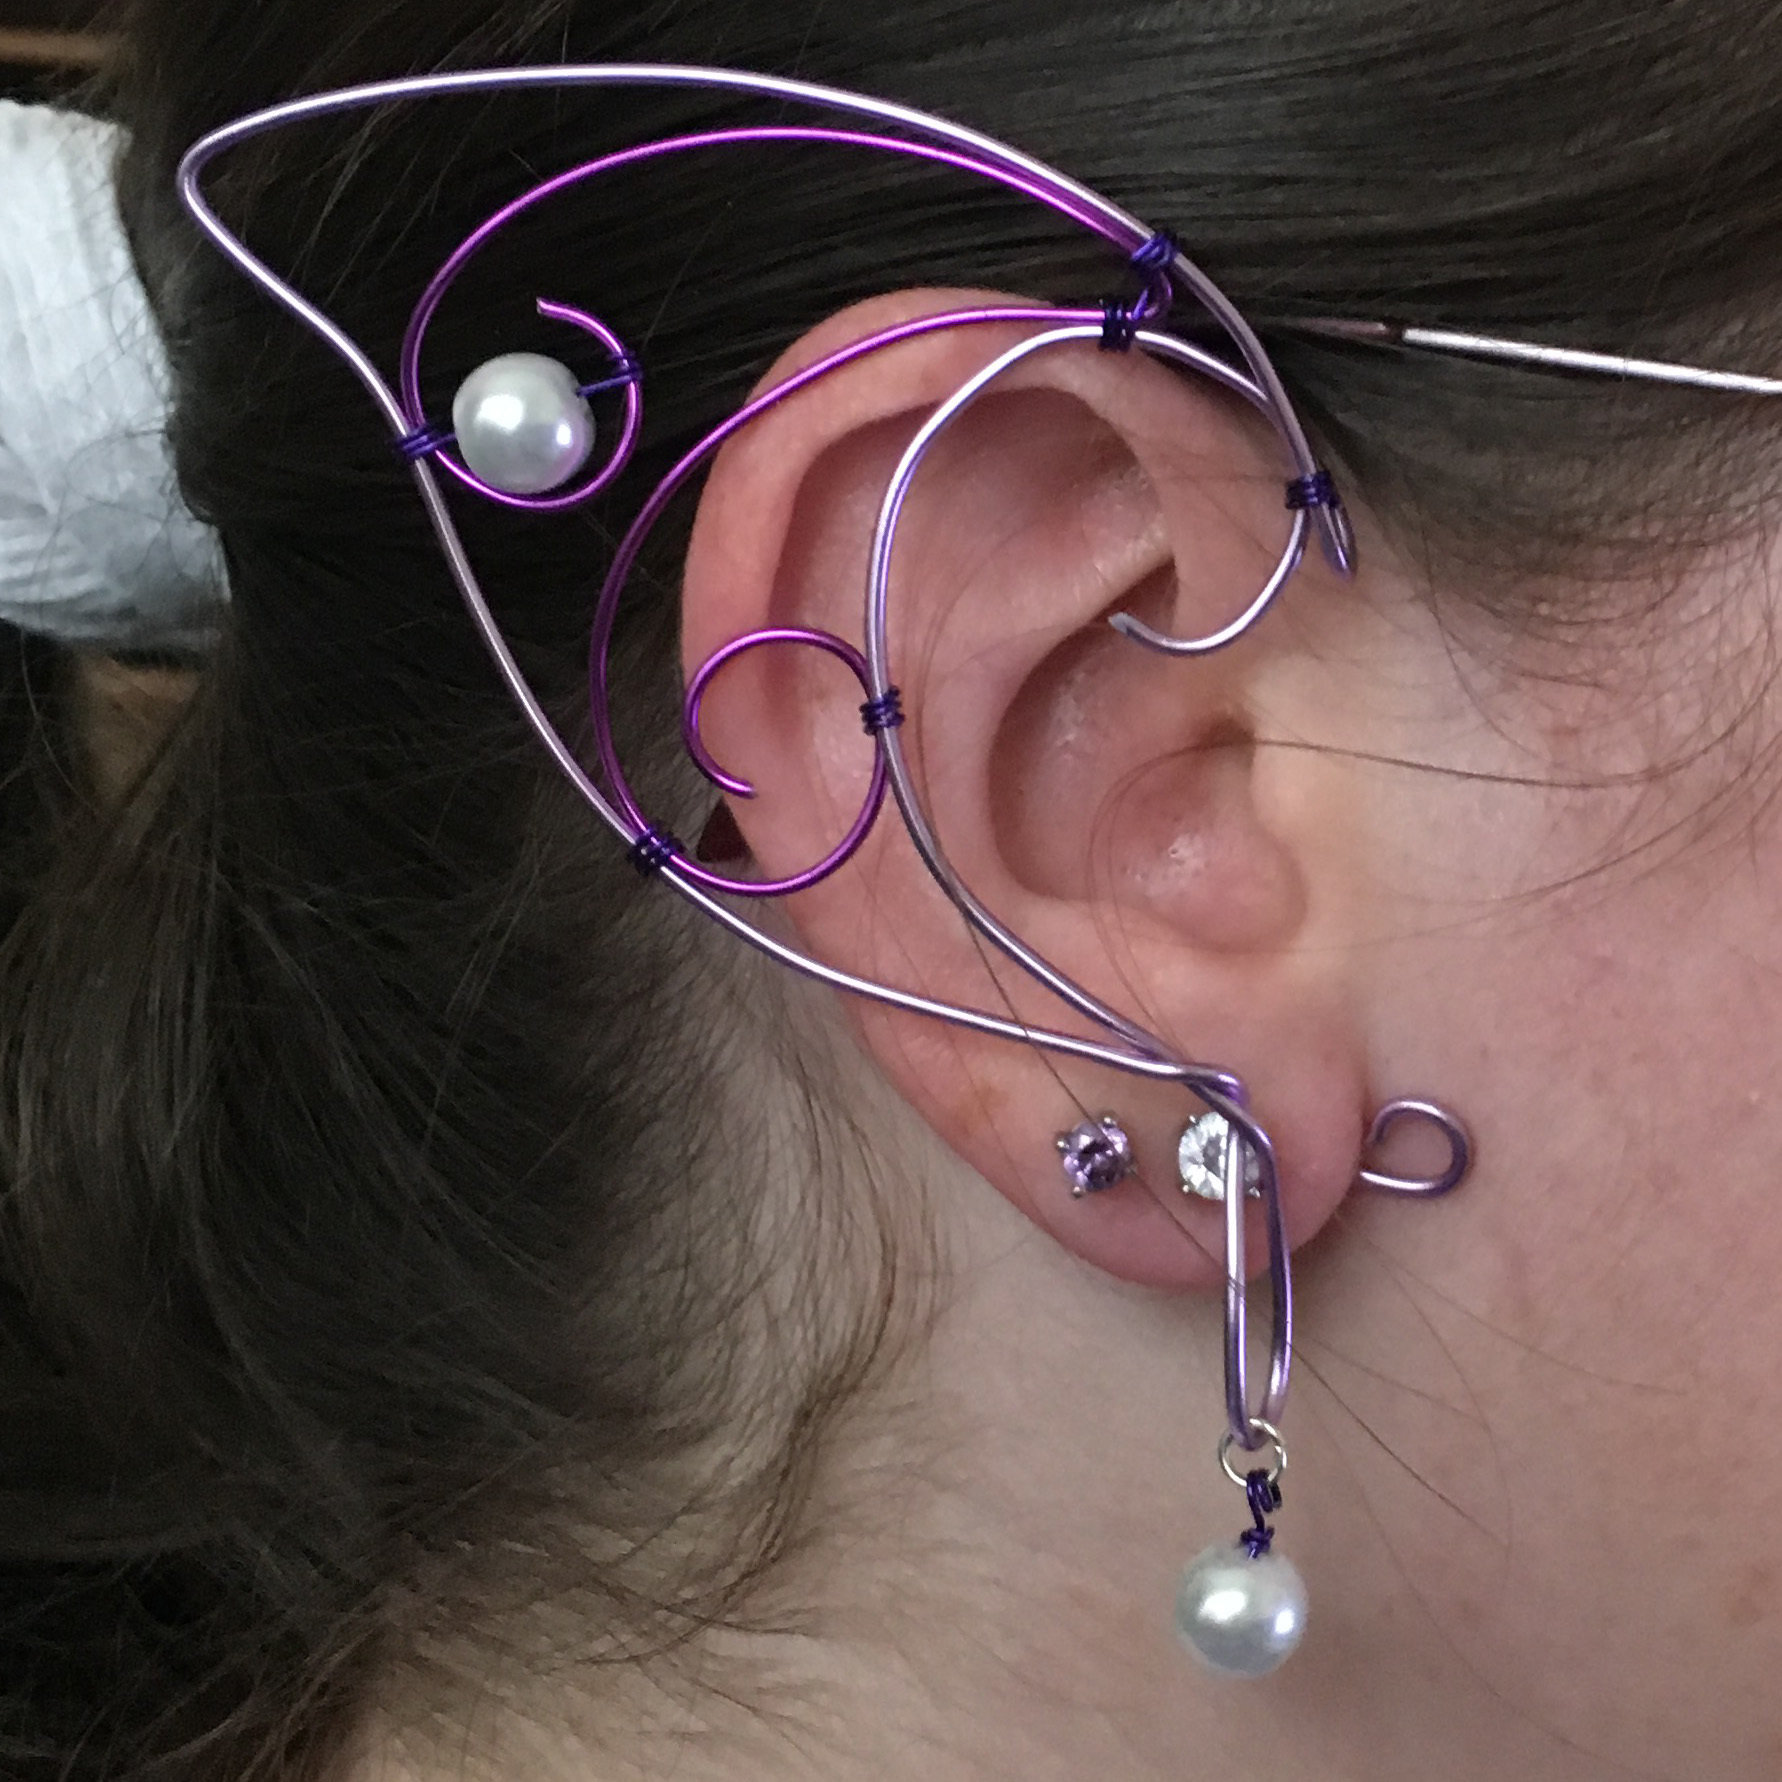 Elf Ear Cuff - Lavender and Purple with beads EC007